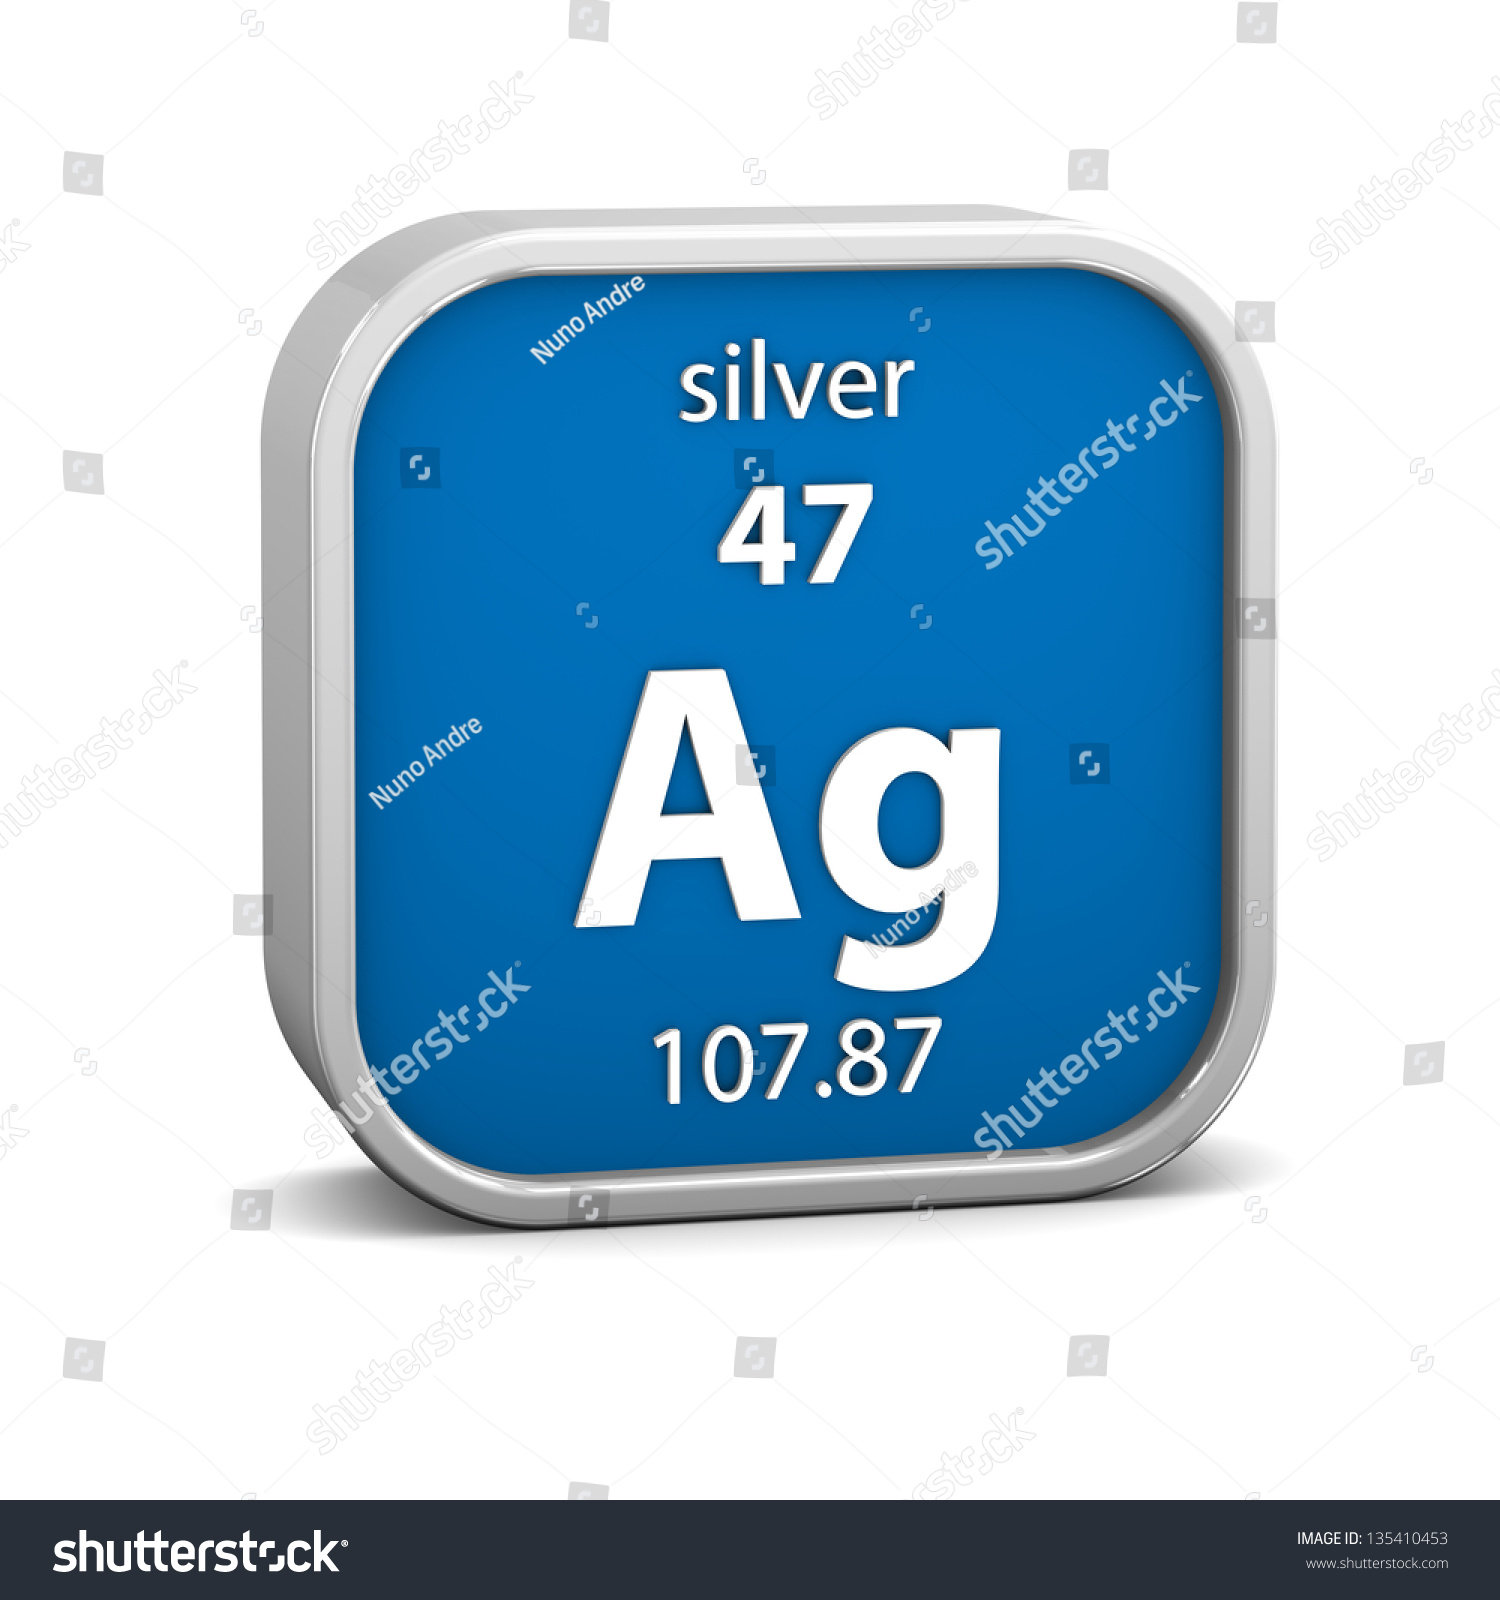 Silver material on periodic table part stock illustration silver material on the periodic table part of a series gamestrikefo Image collections